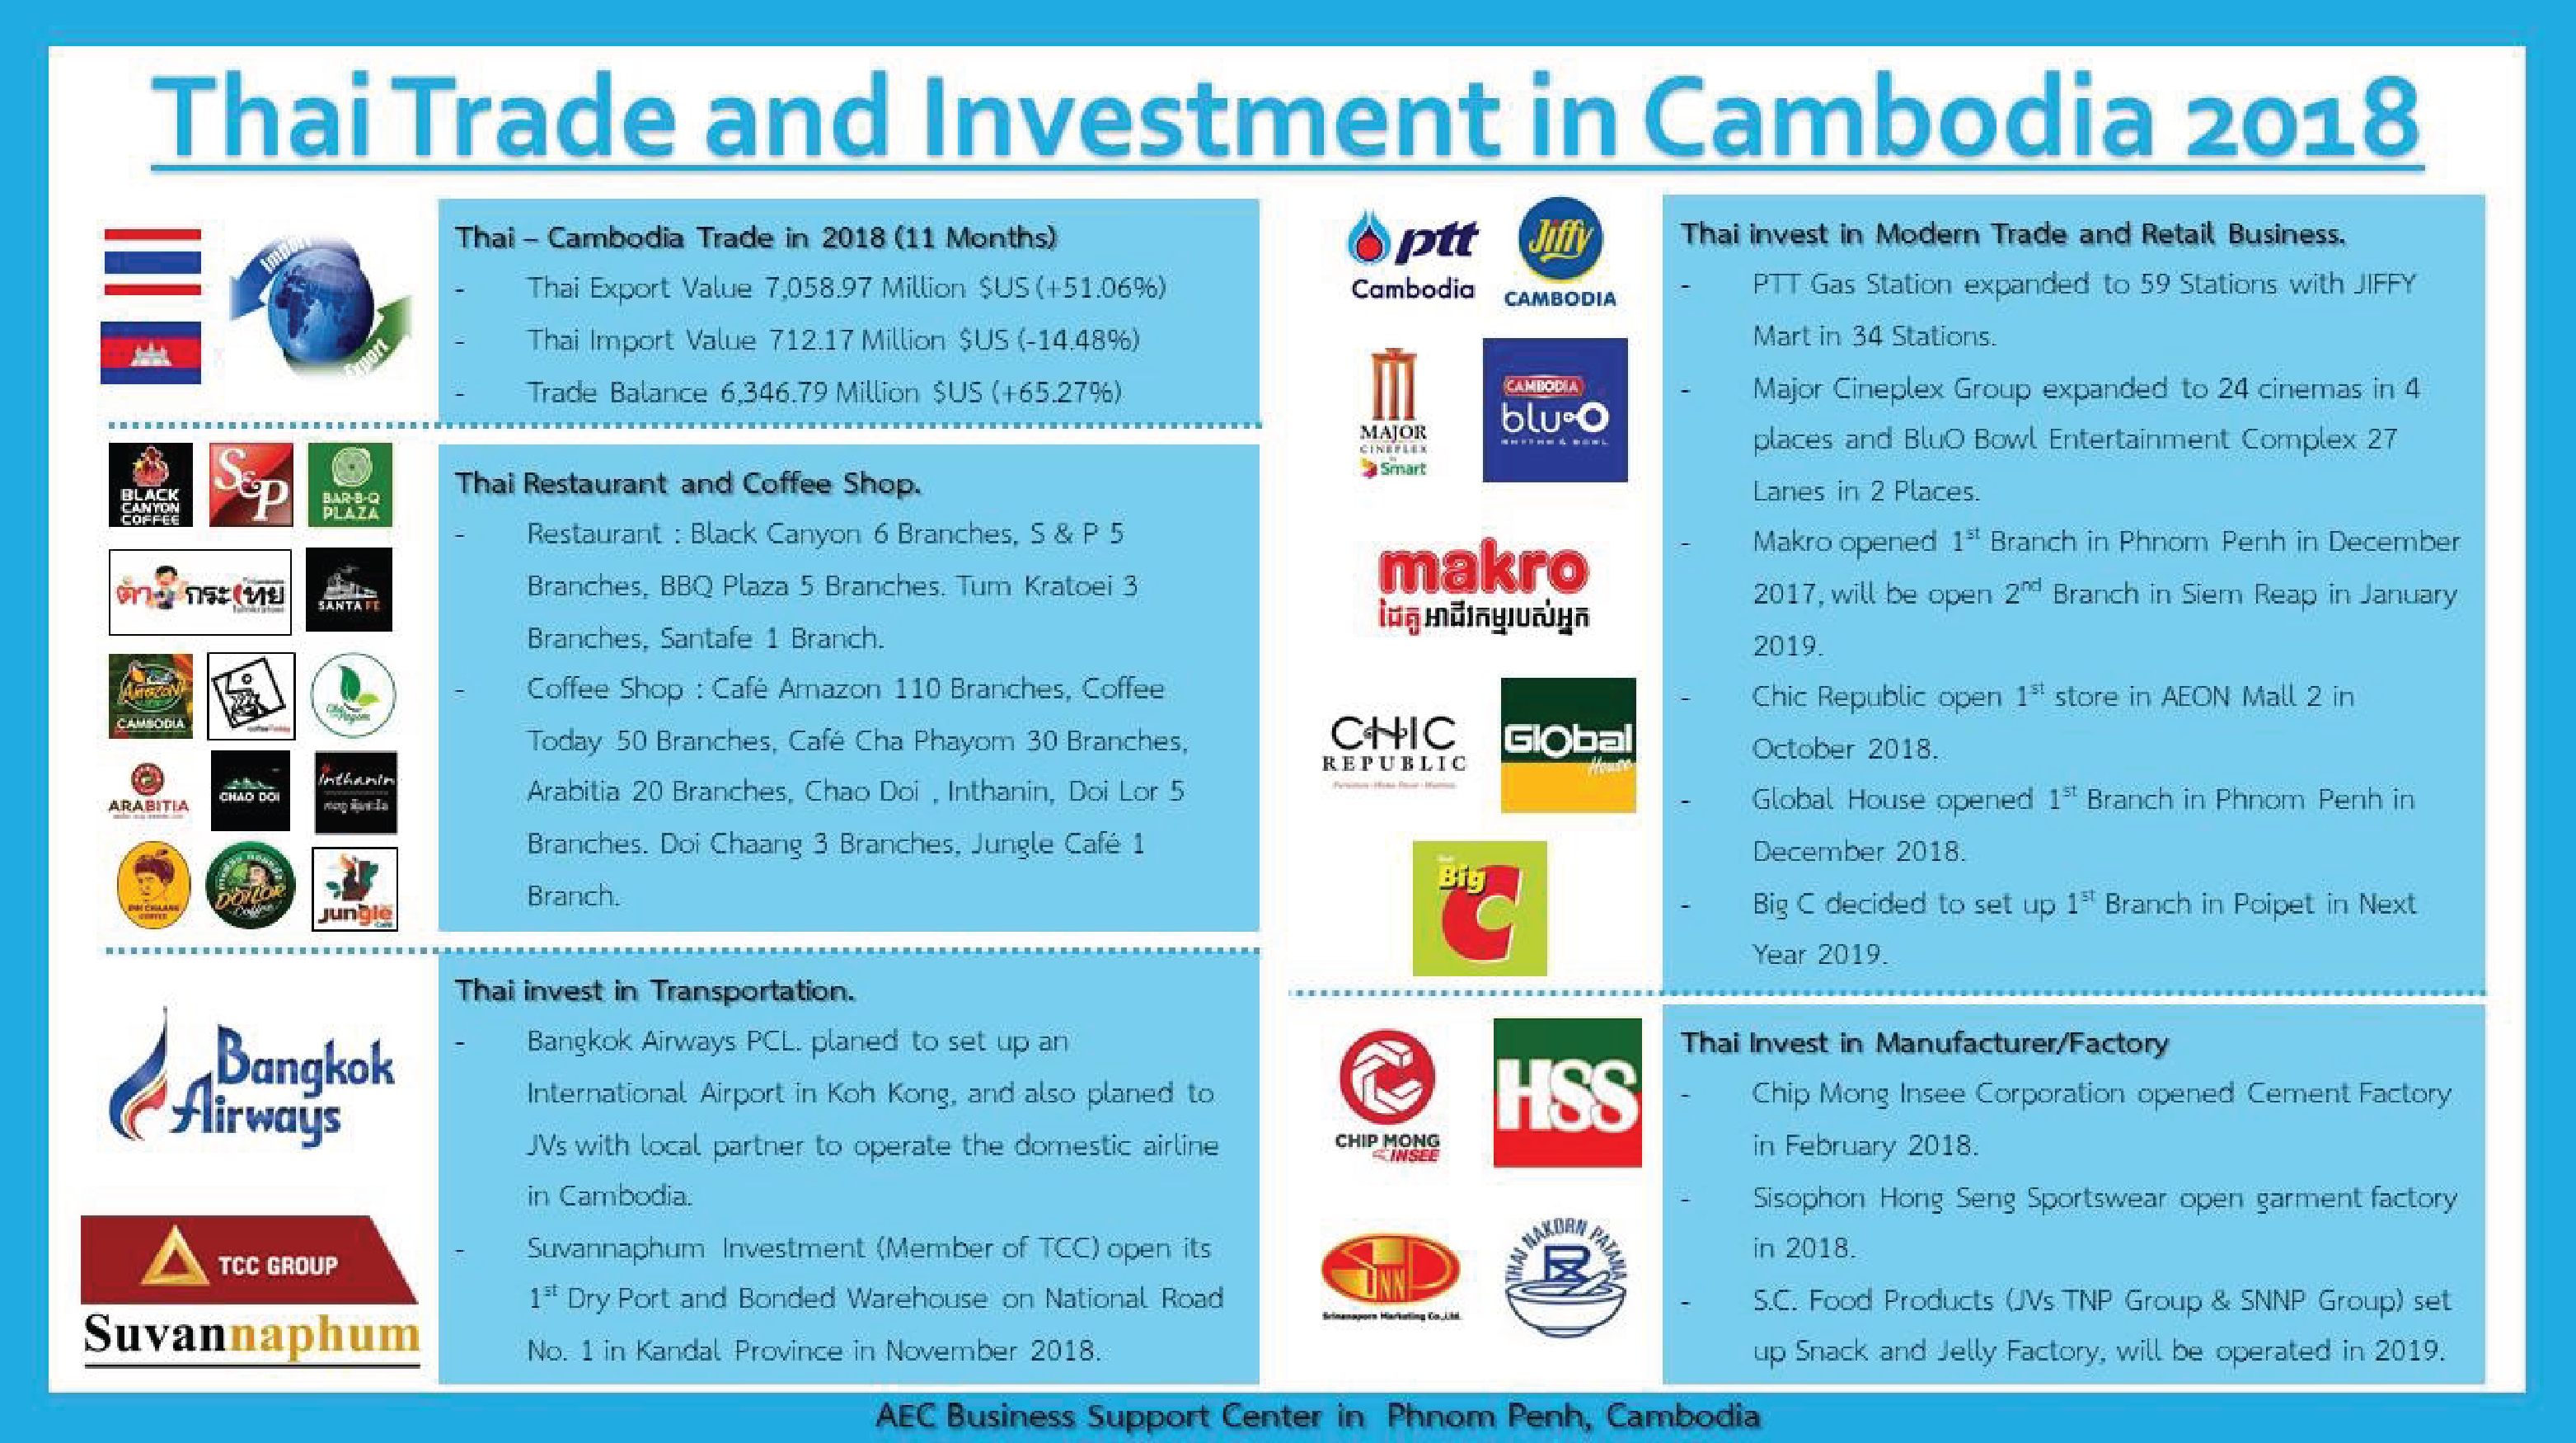 Thai Trade and Investment in Cambodia 2018